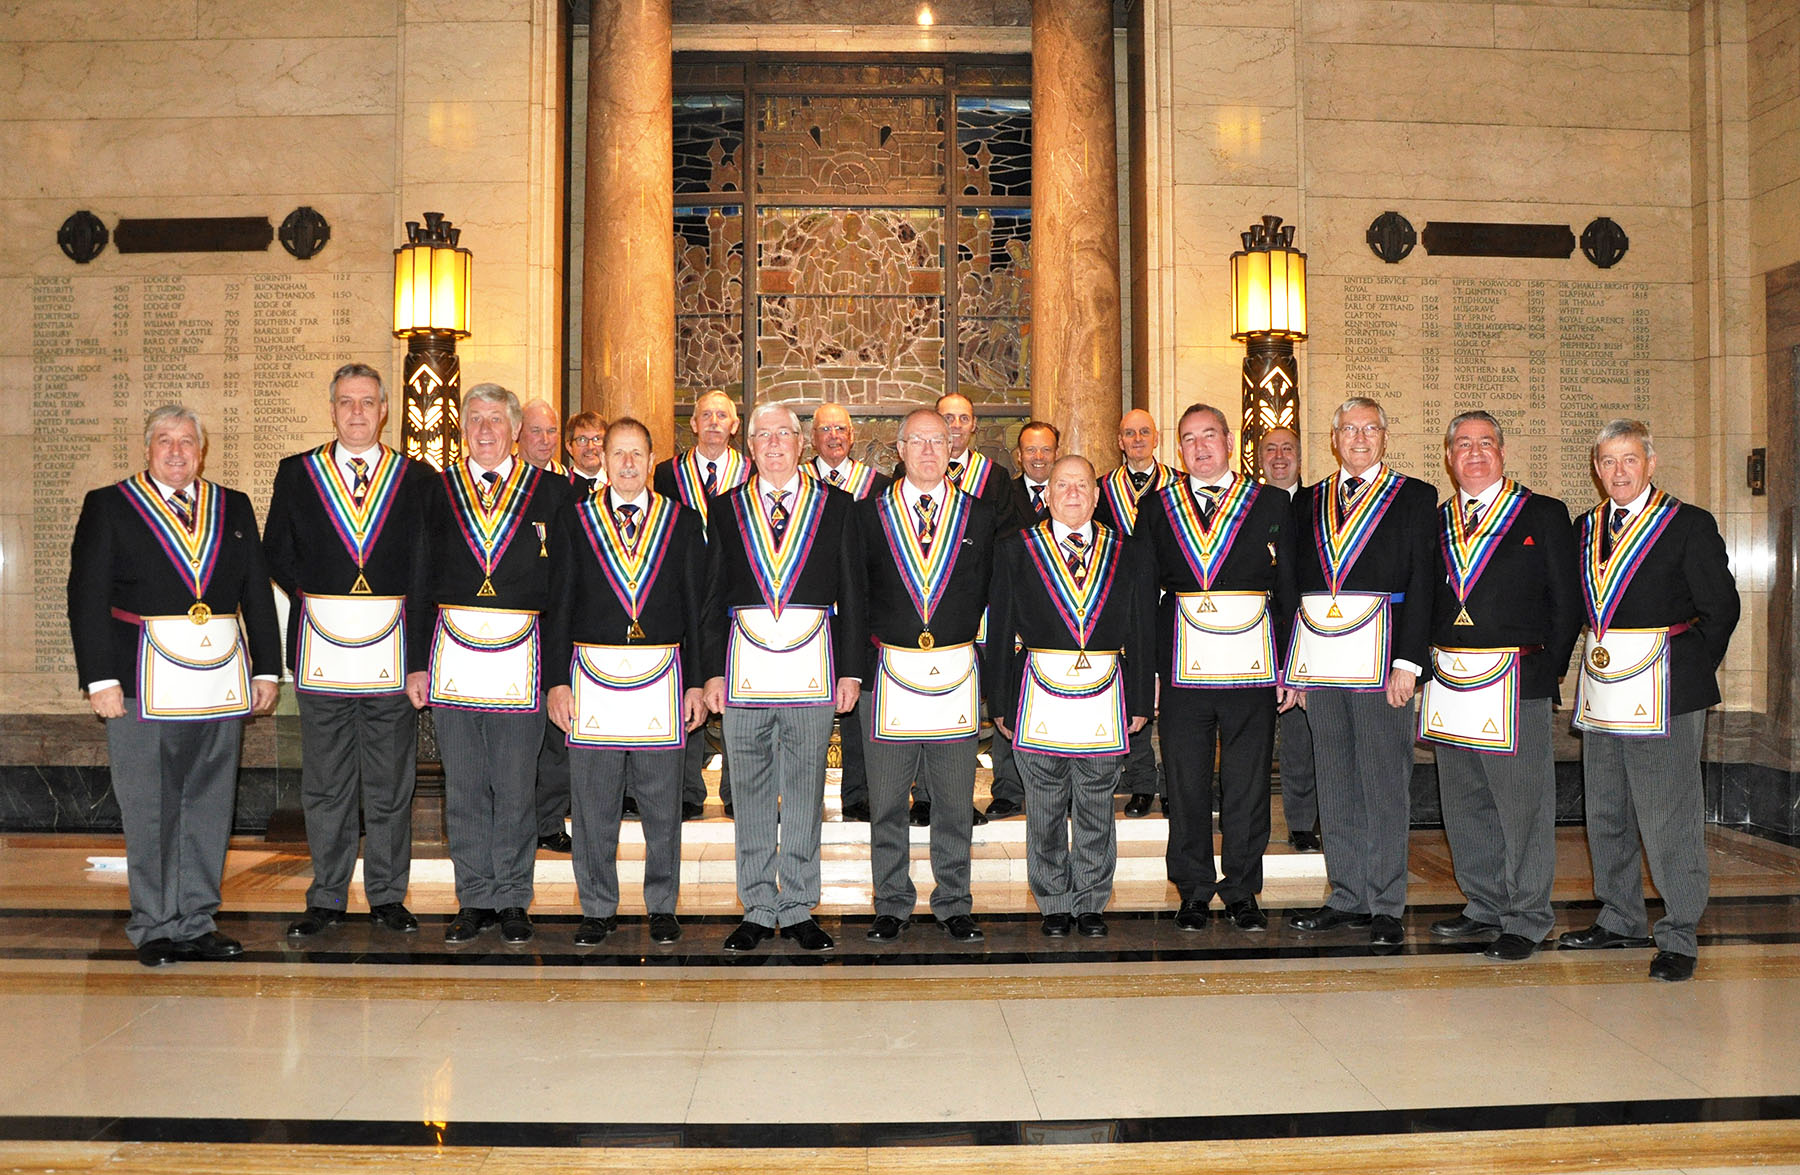 Grand Rank in the Ancient and Honourable Fraternity of Royal Ark Mariners